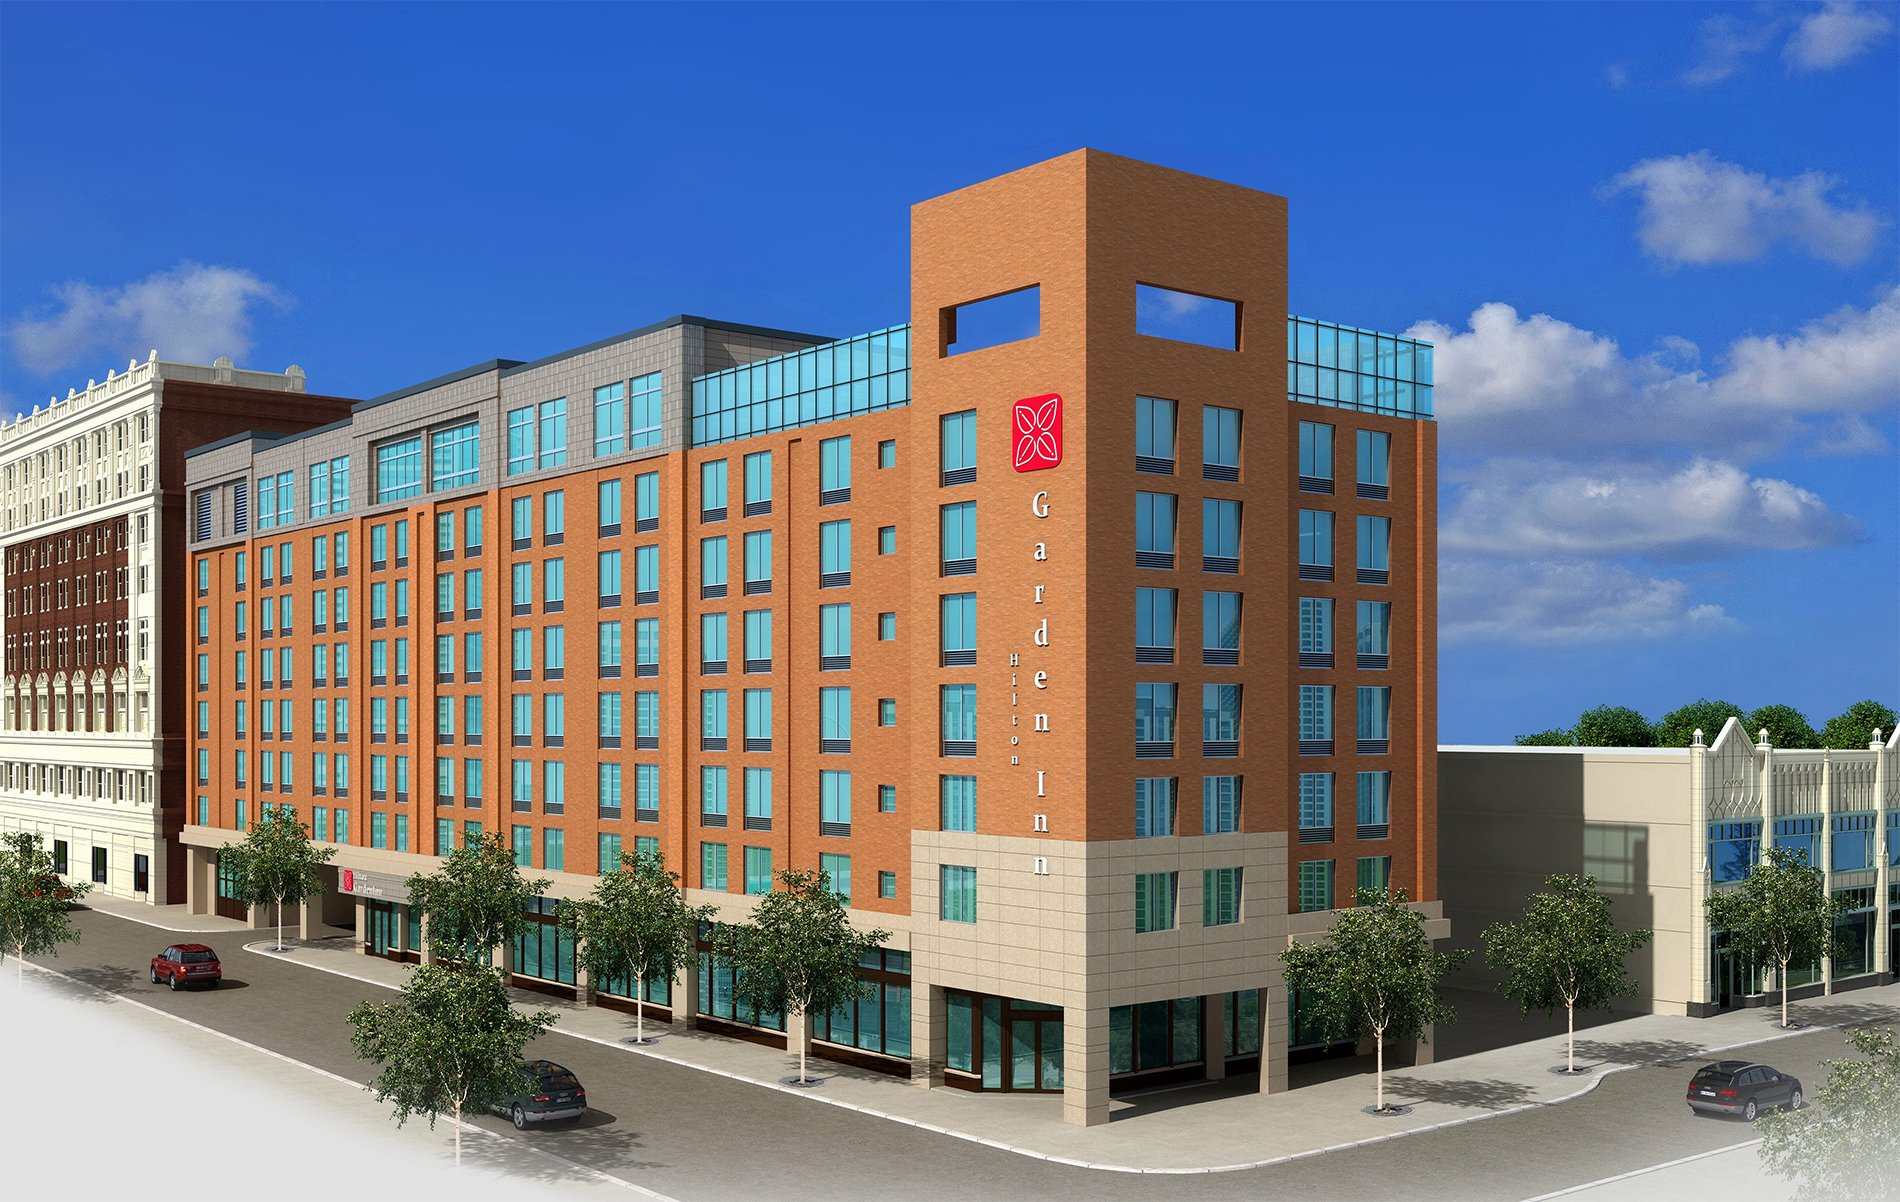 Hilton Garden Inn Welcomes Its Newest Hotel In The Heart Of Downtown Louisville